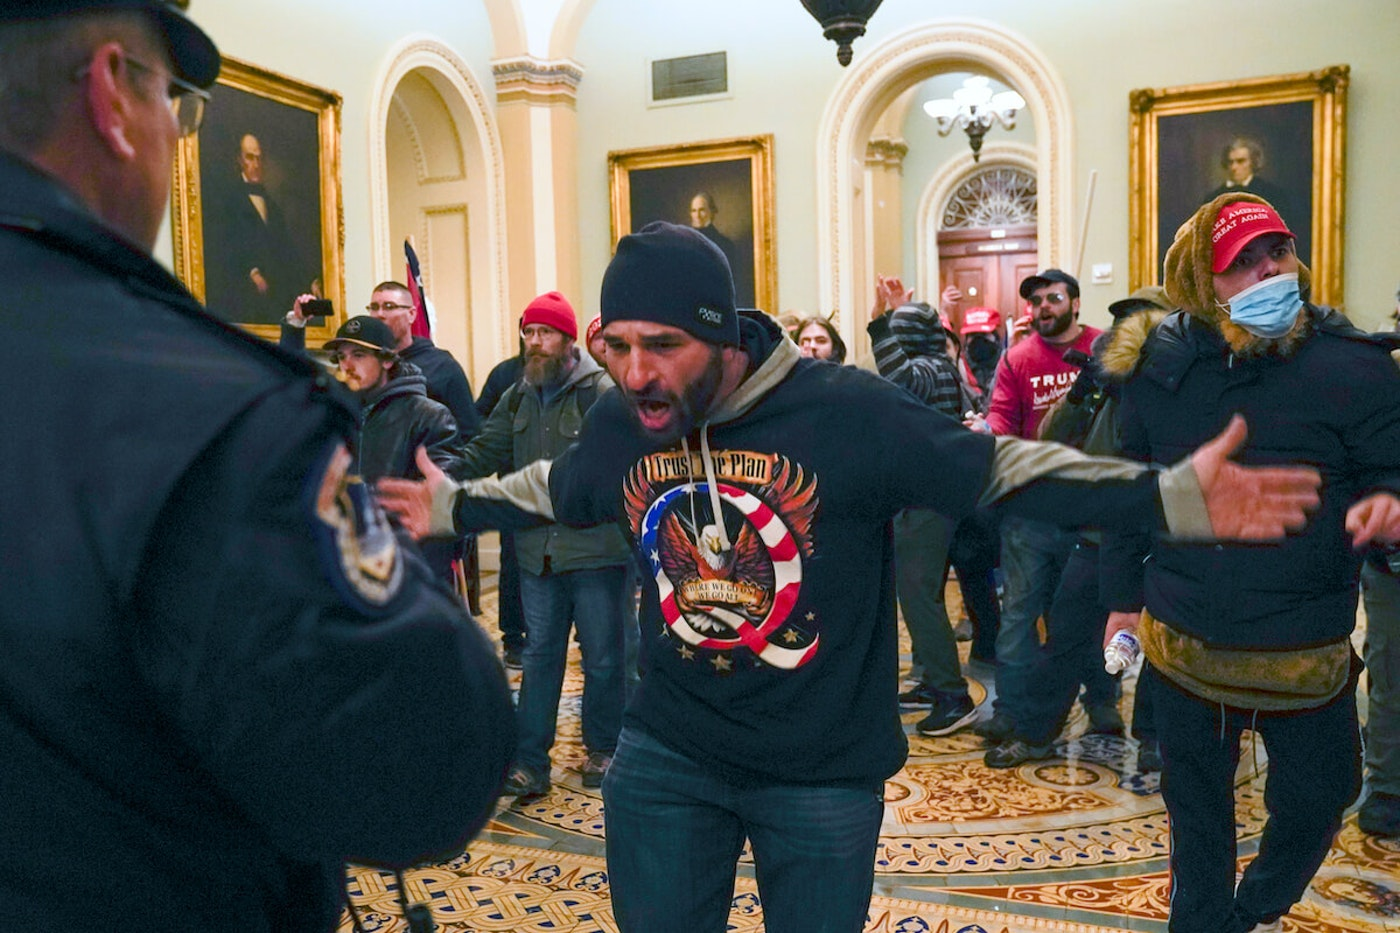 Domestic terrorists gesture to US Capitol Police in the hallway outside of the Senate chamber at the Capitol in Washington, Wednesday, Jan. 6, 2021. (AP Photo/Manuel Balce Ceneta)